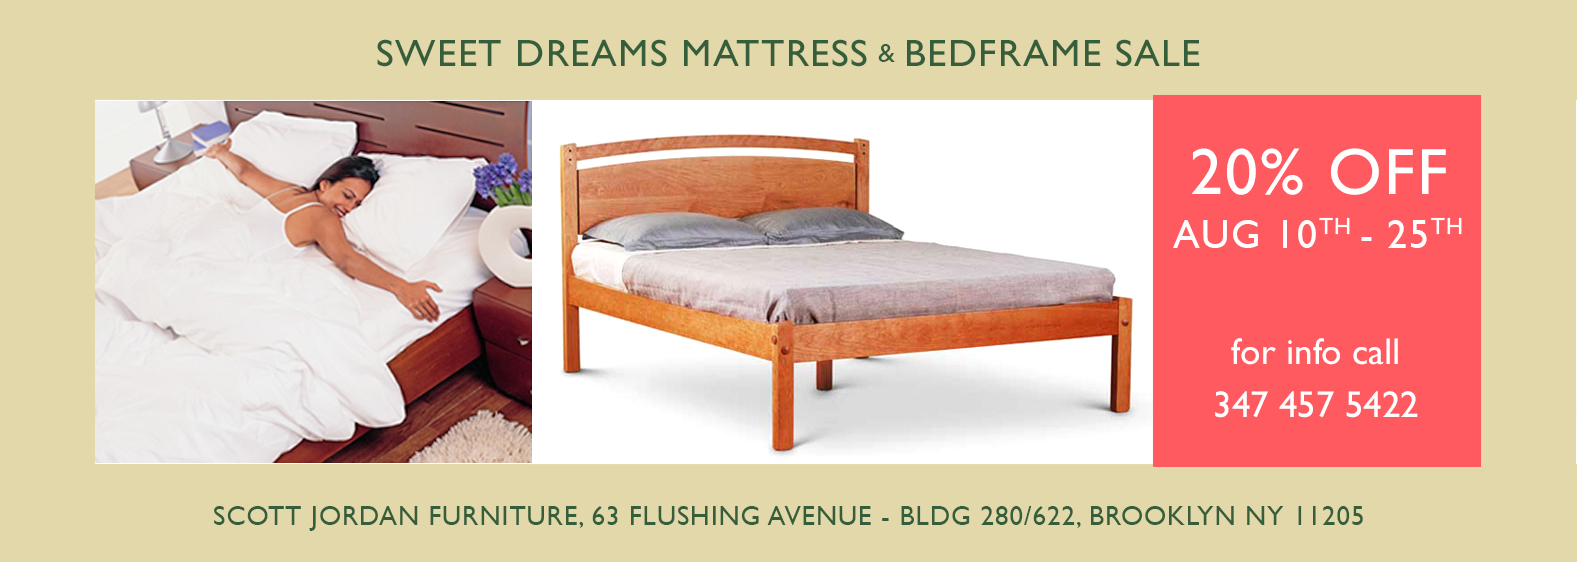 Mattress Bed frame sale Aug 2020